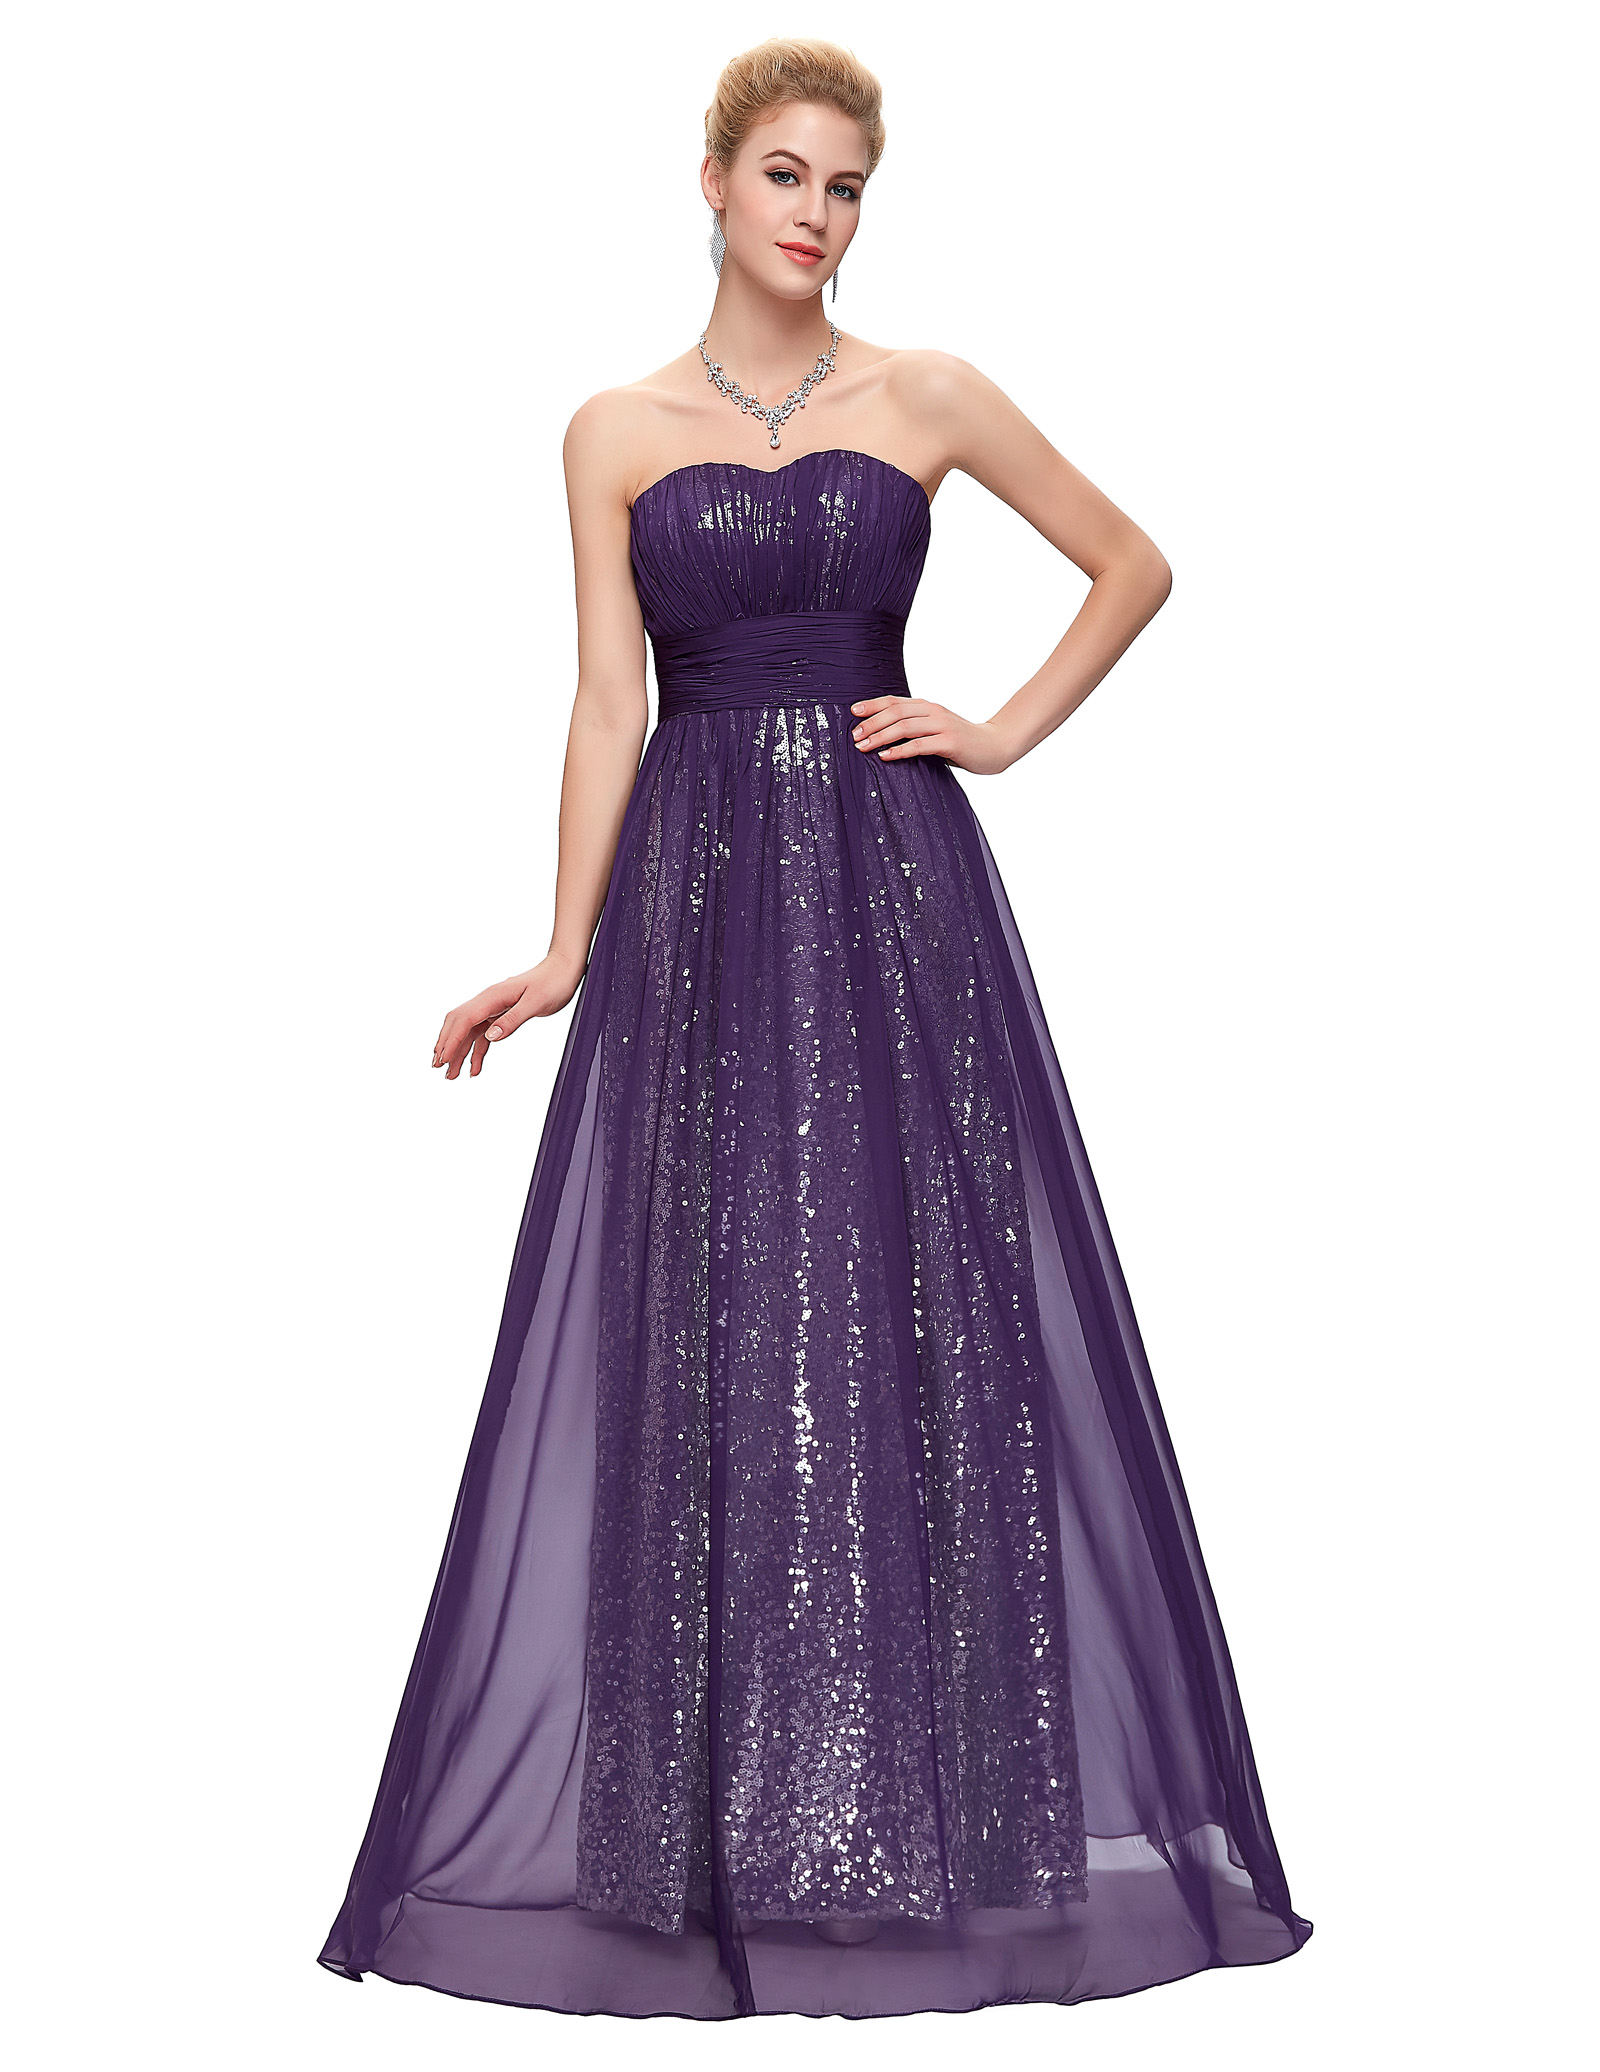 Long, flowing sequin prom dresses evoke elegance and a rich, refined style. Look for something that sparkles from head to toe or consider strapless dresses that stand out with embellishments. especially when paired with pumps or prom sandals. Go for frocks in rich, dark colors like black, blue, burgundy or green. Look for sequins in.